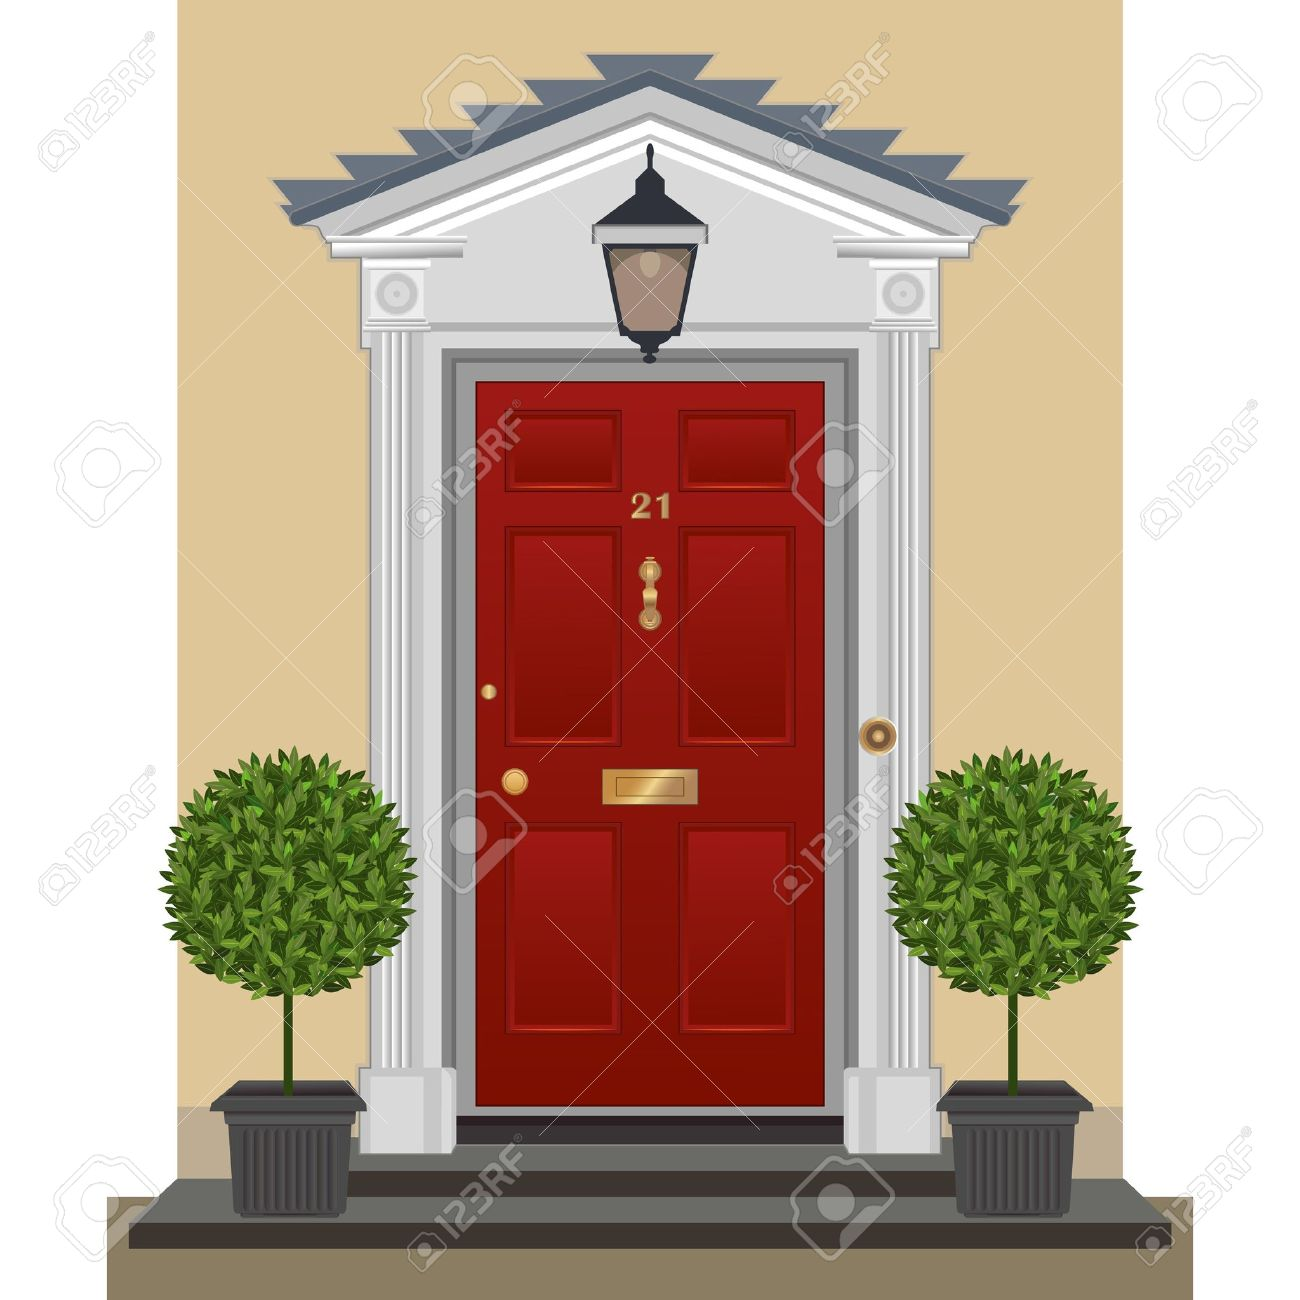 Door clipart cute door #3